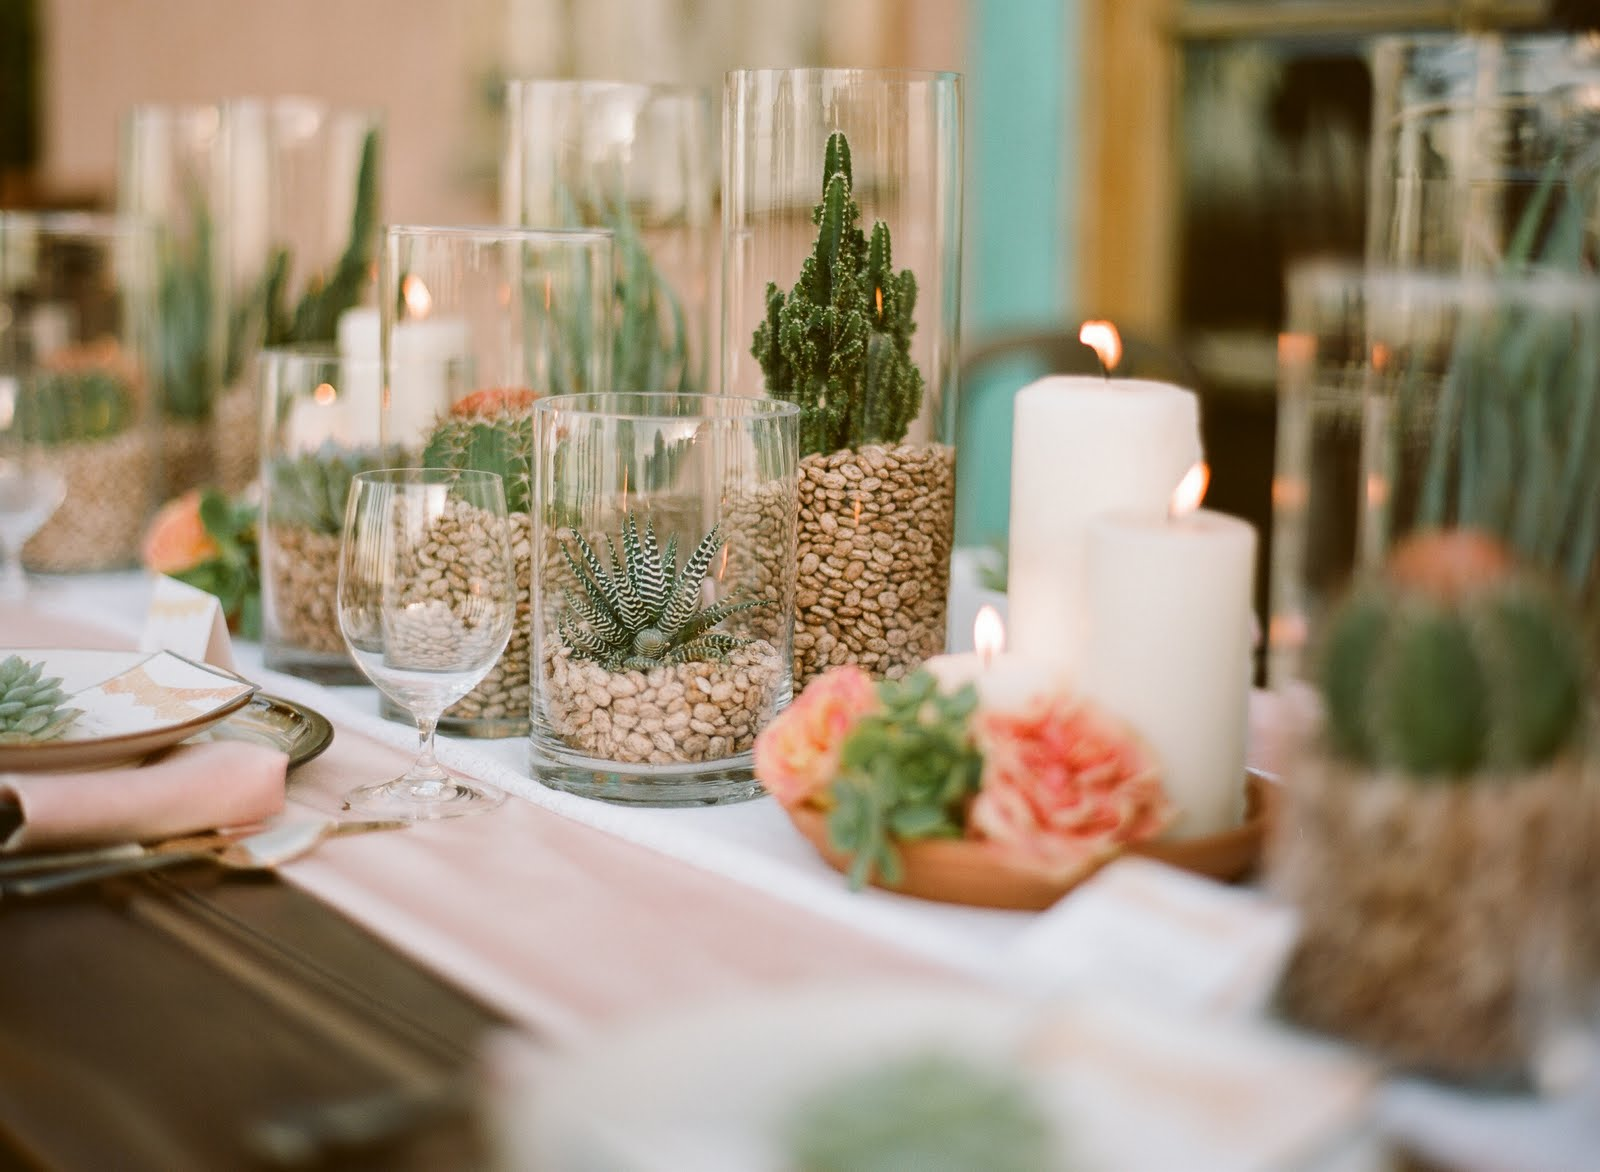 Unique Centerpiece - Instead of flowers use mini glass vases filled with succulents. The earthy look is elegant and a nice change from roses.